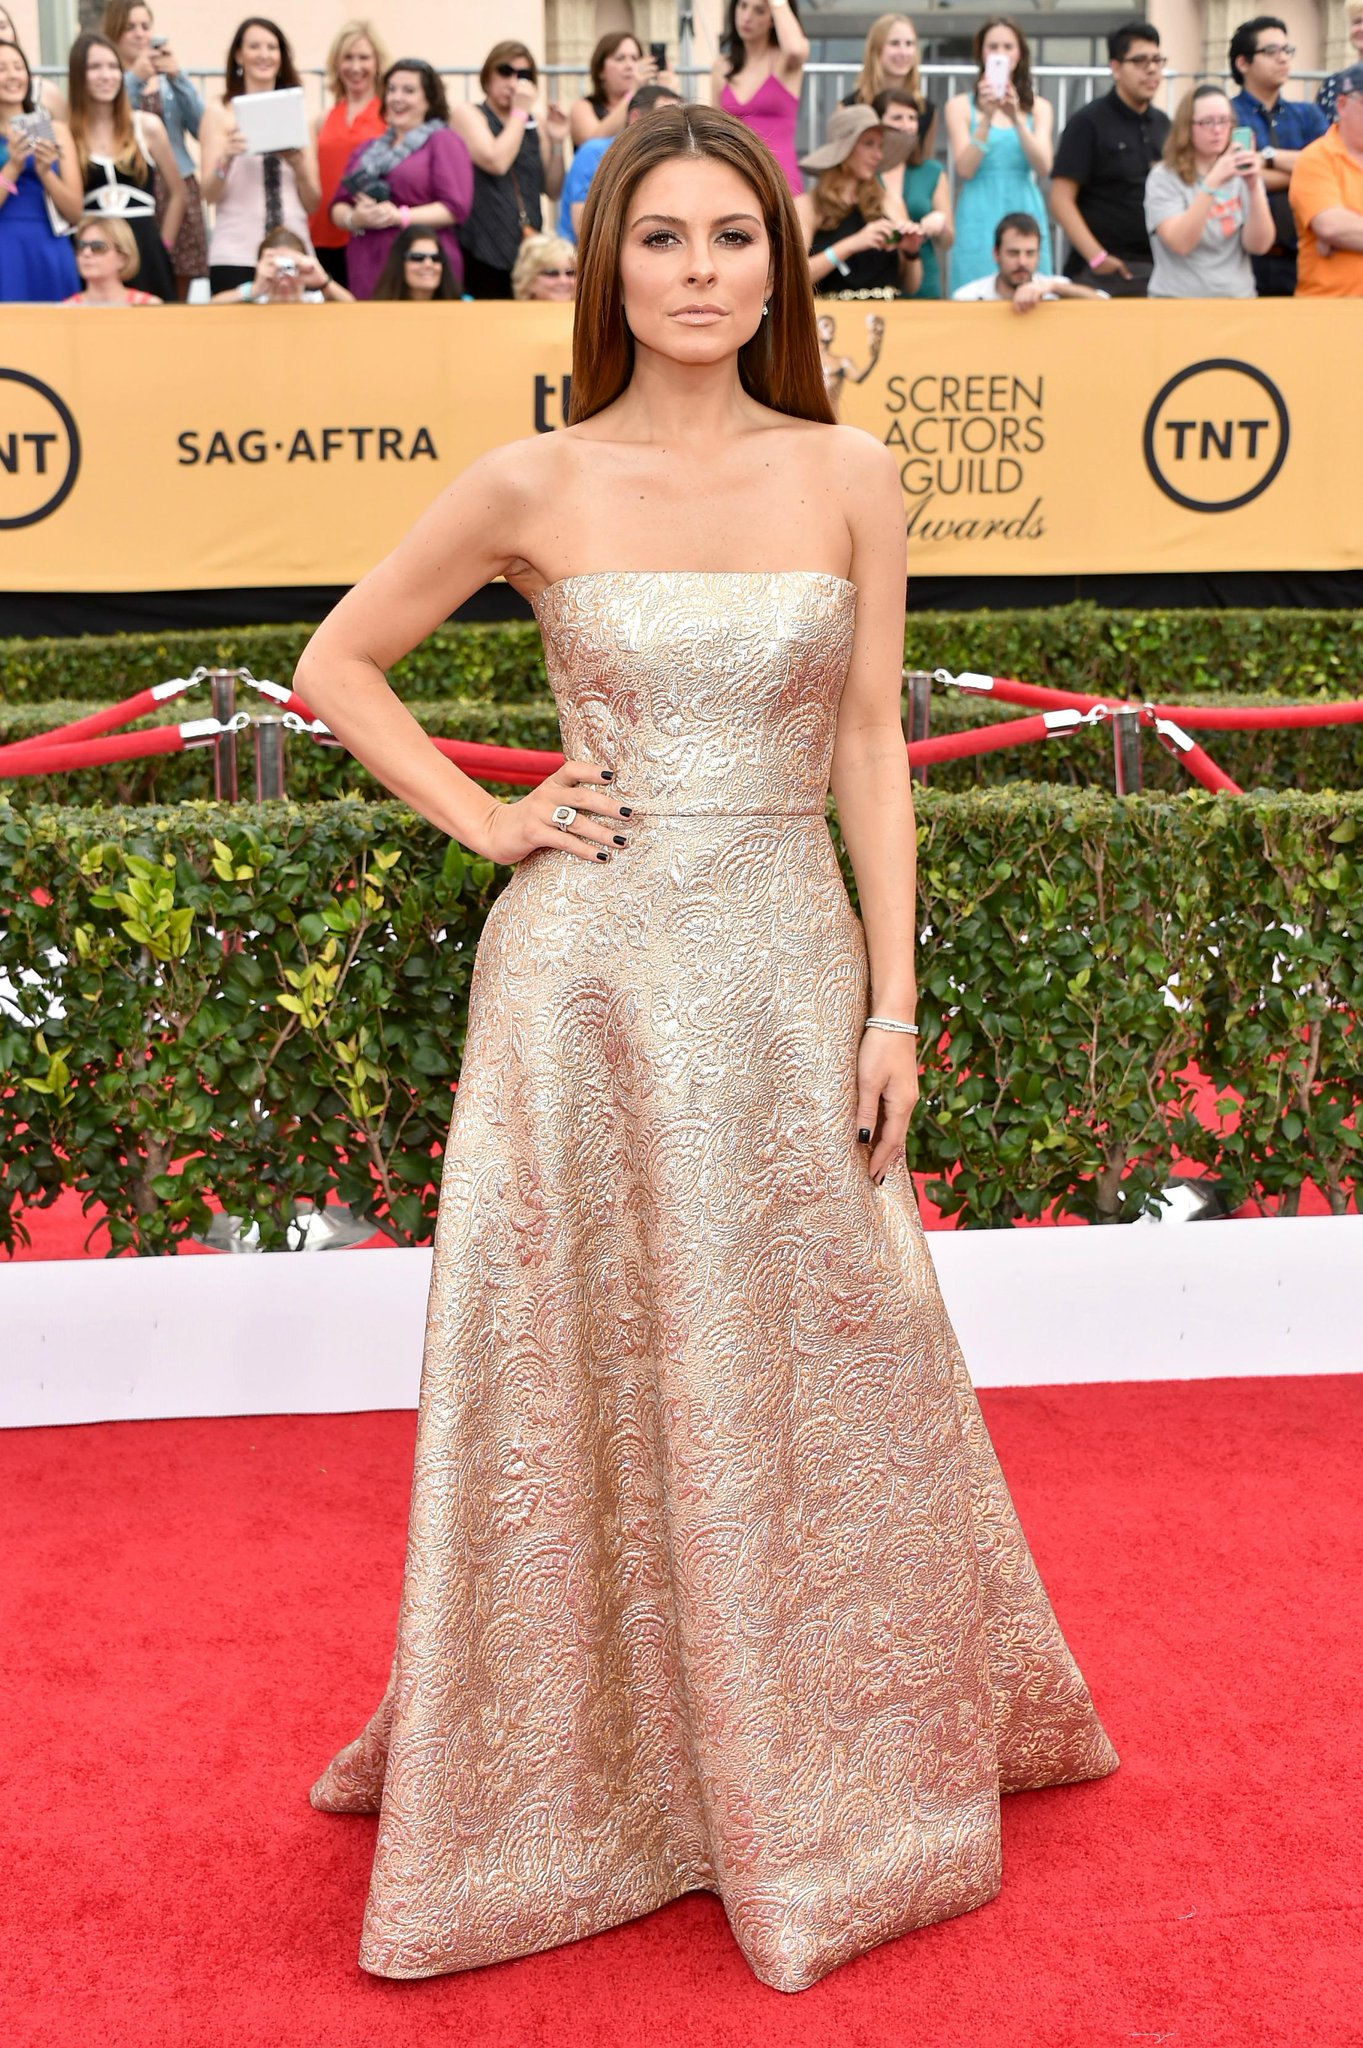 Here we go... the presenters have arrived on the 2015 #SAGAwards red carpet http://t.co/S2FQq2tRwh http://t.co/lt7EpO57vk